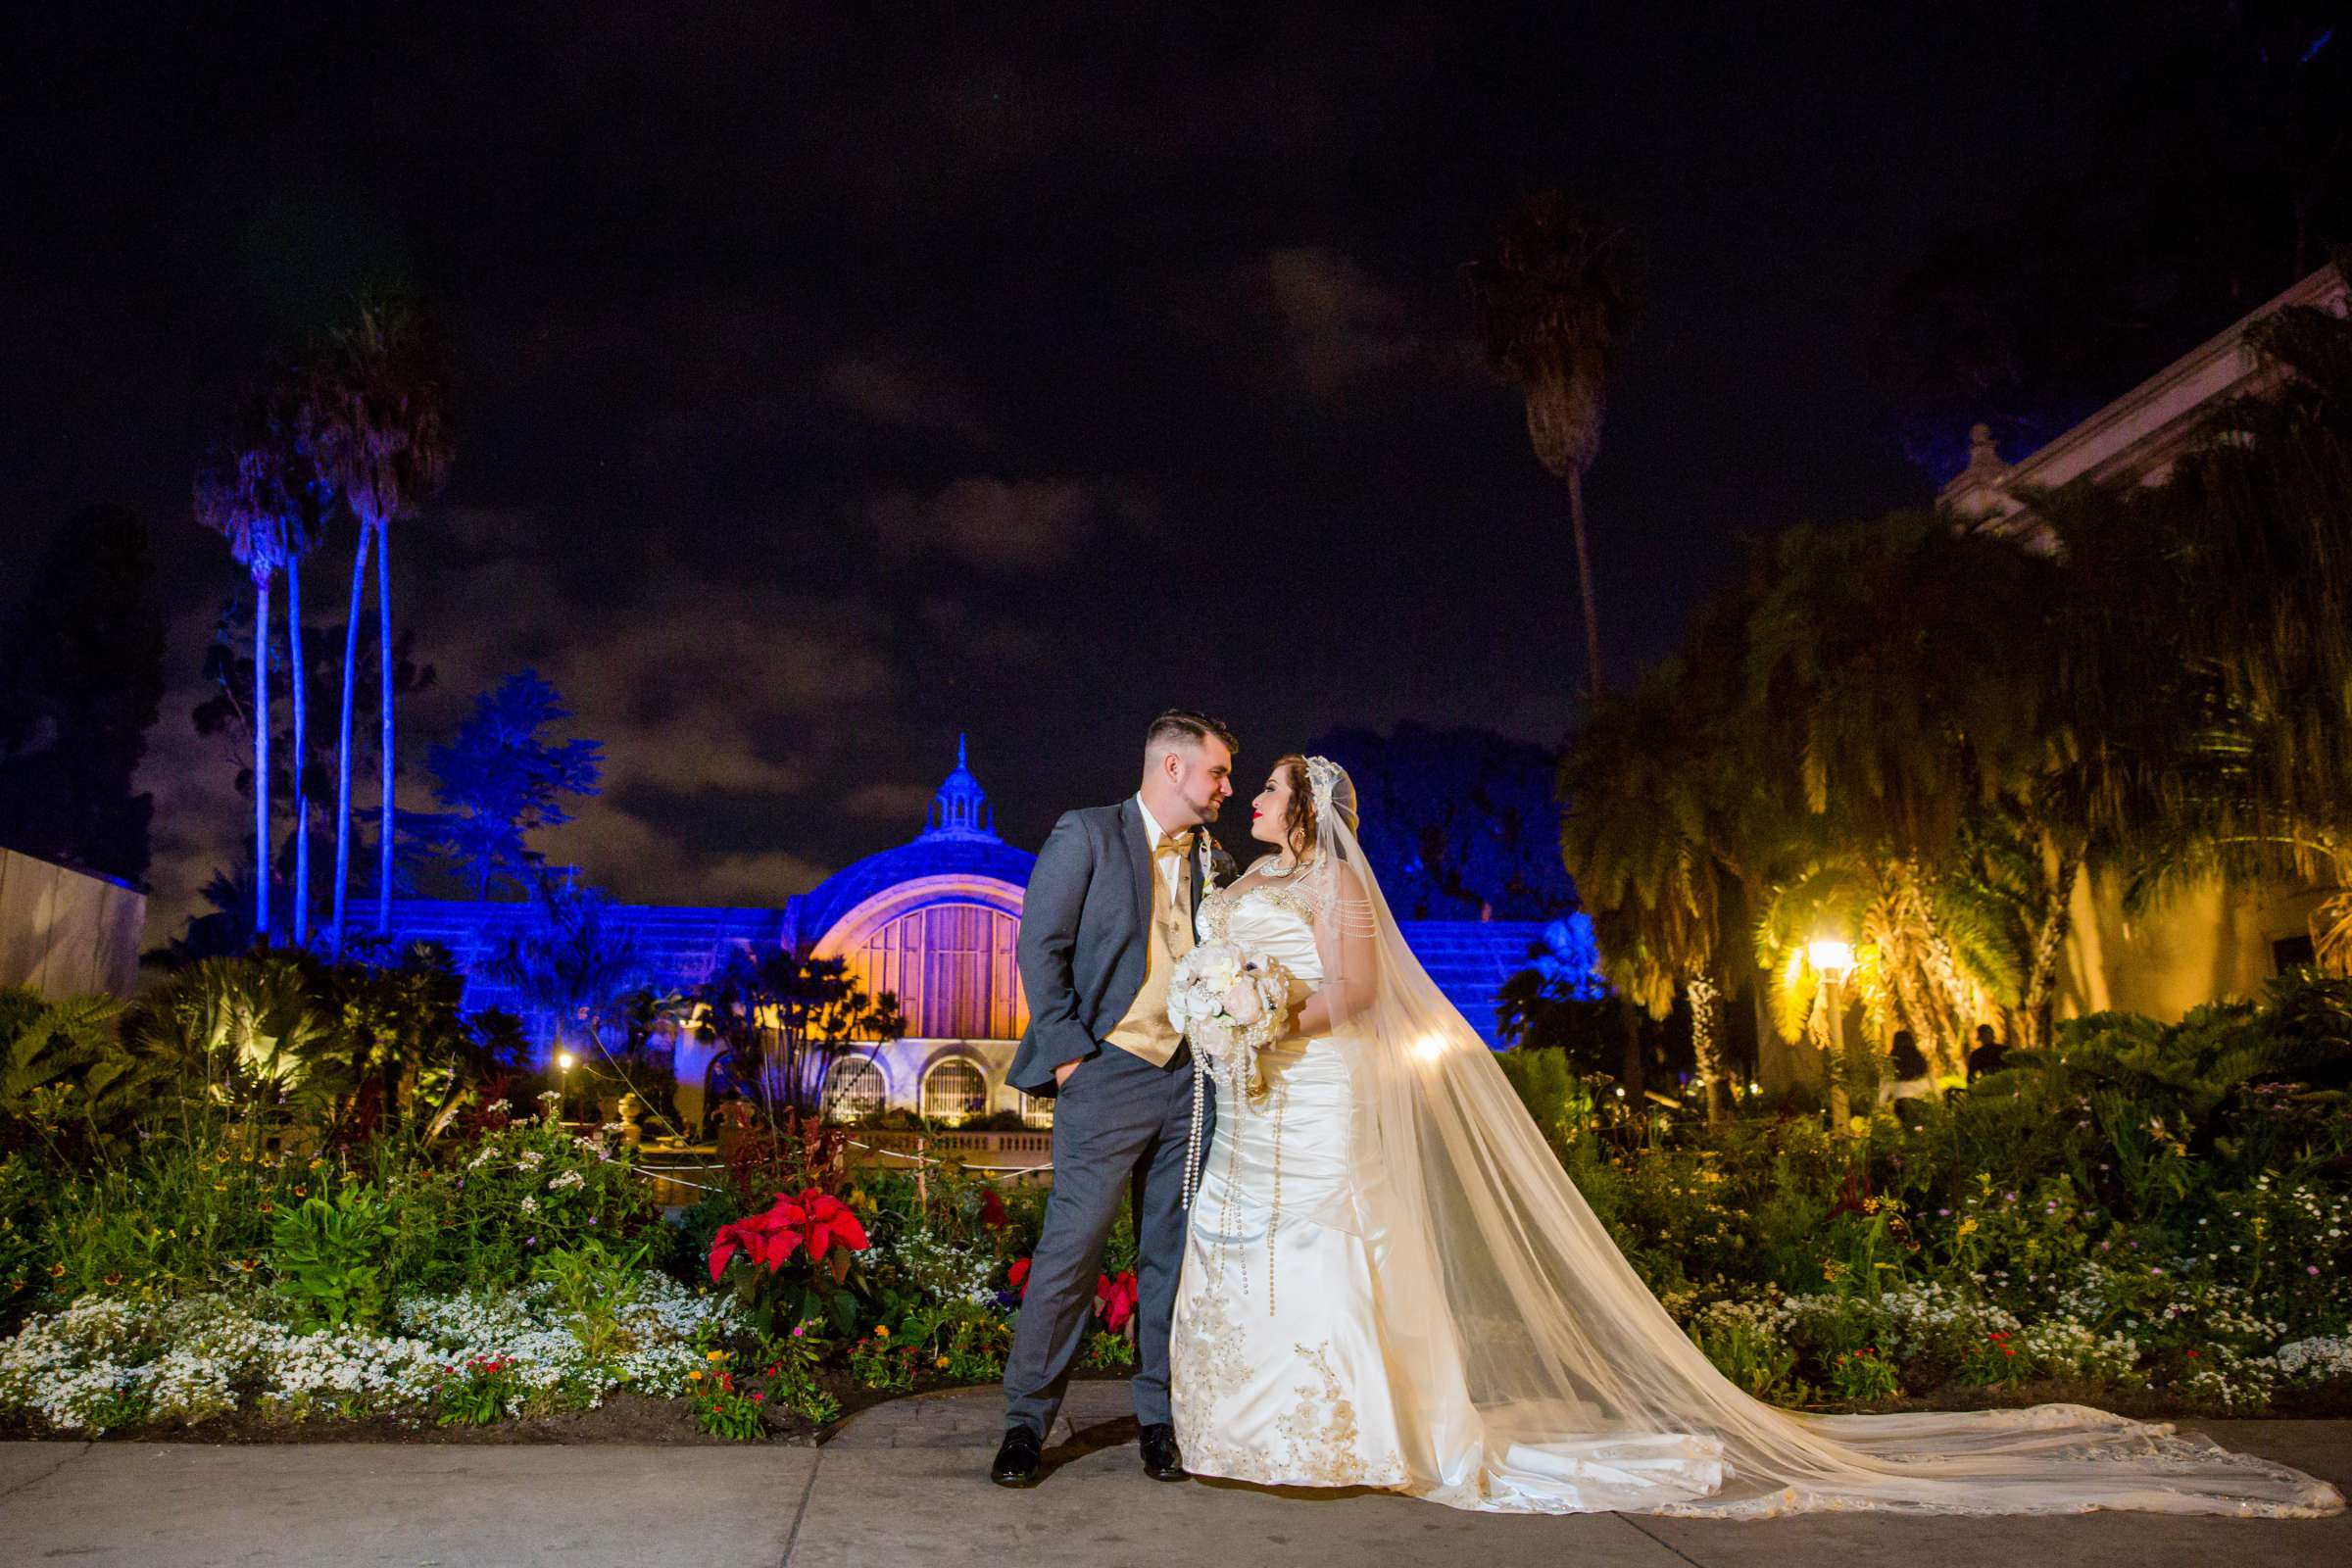 The Prado Wedding coordinated by Breezy Day Weddings, Aalis and Michael Wedding Photo #107 by True Photography